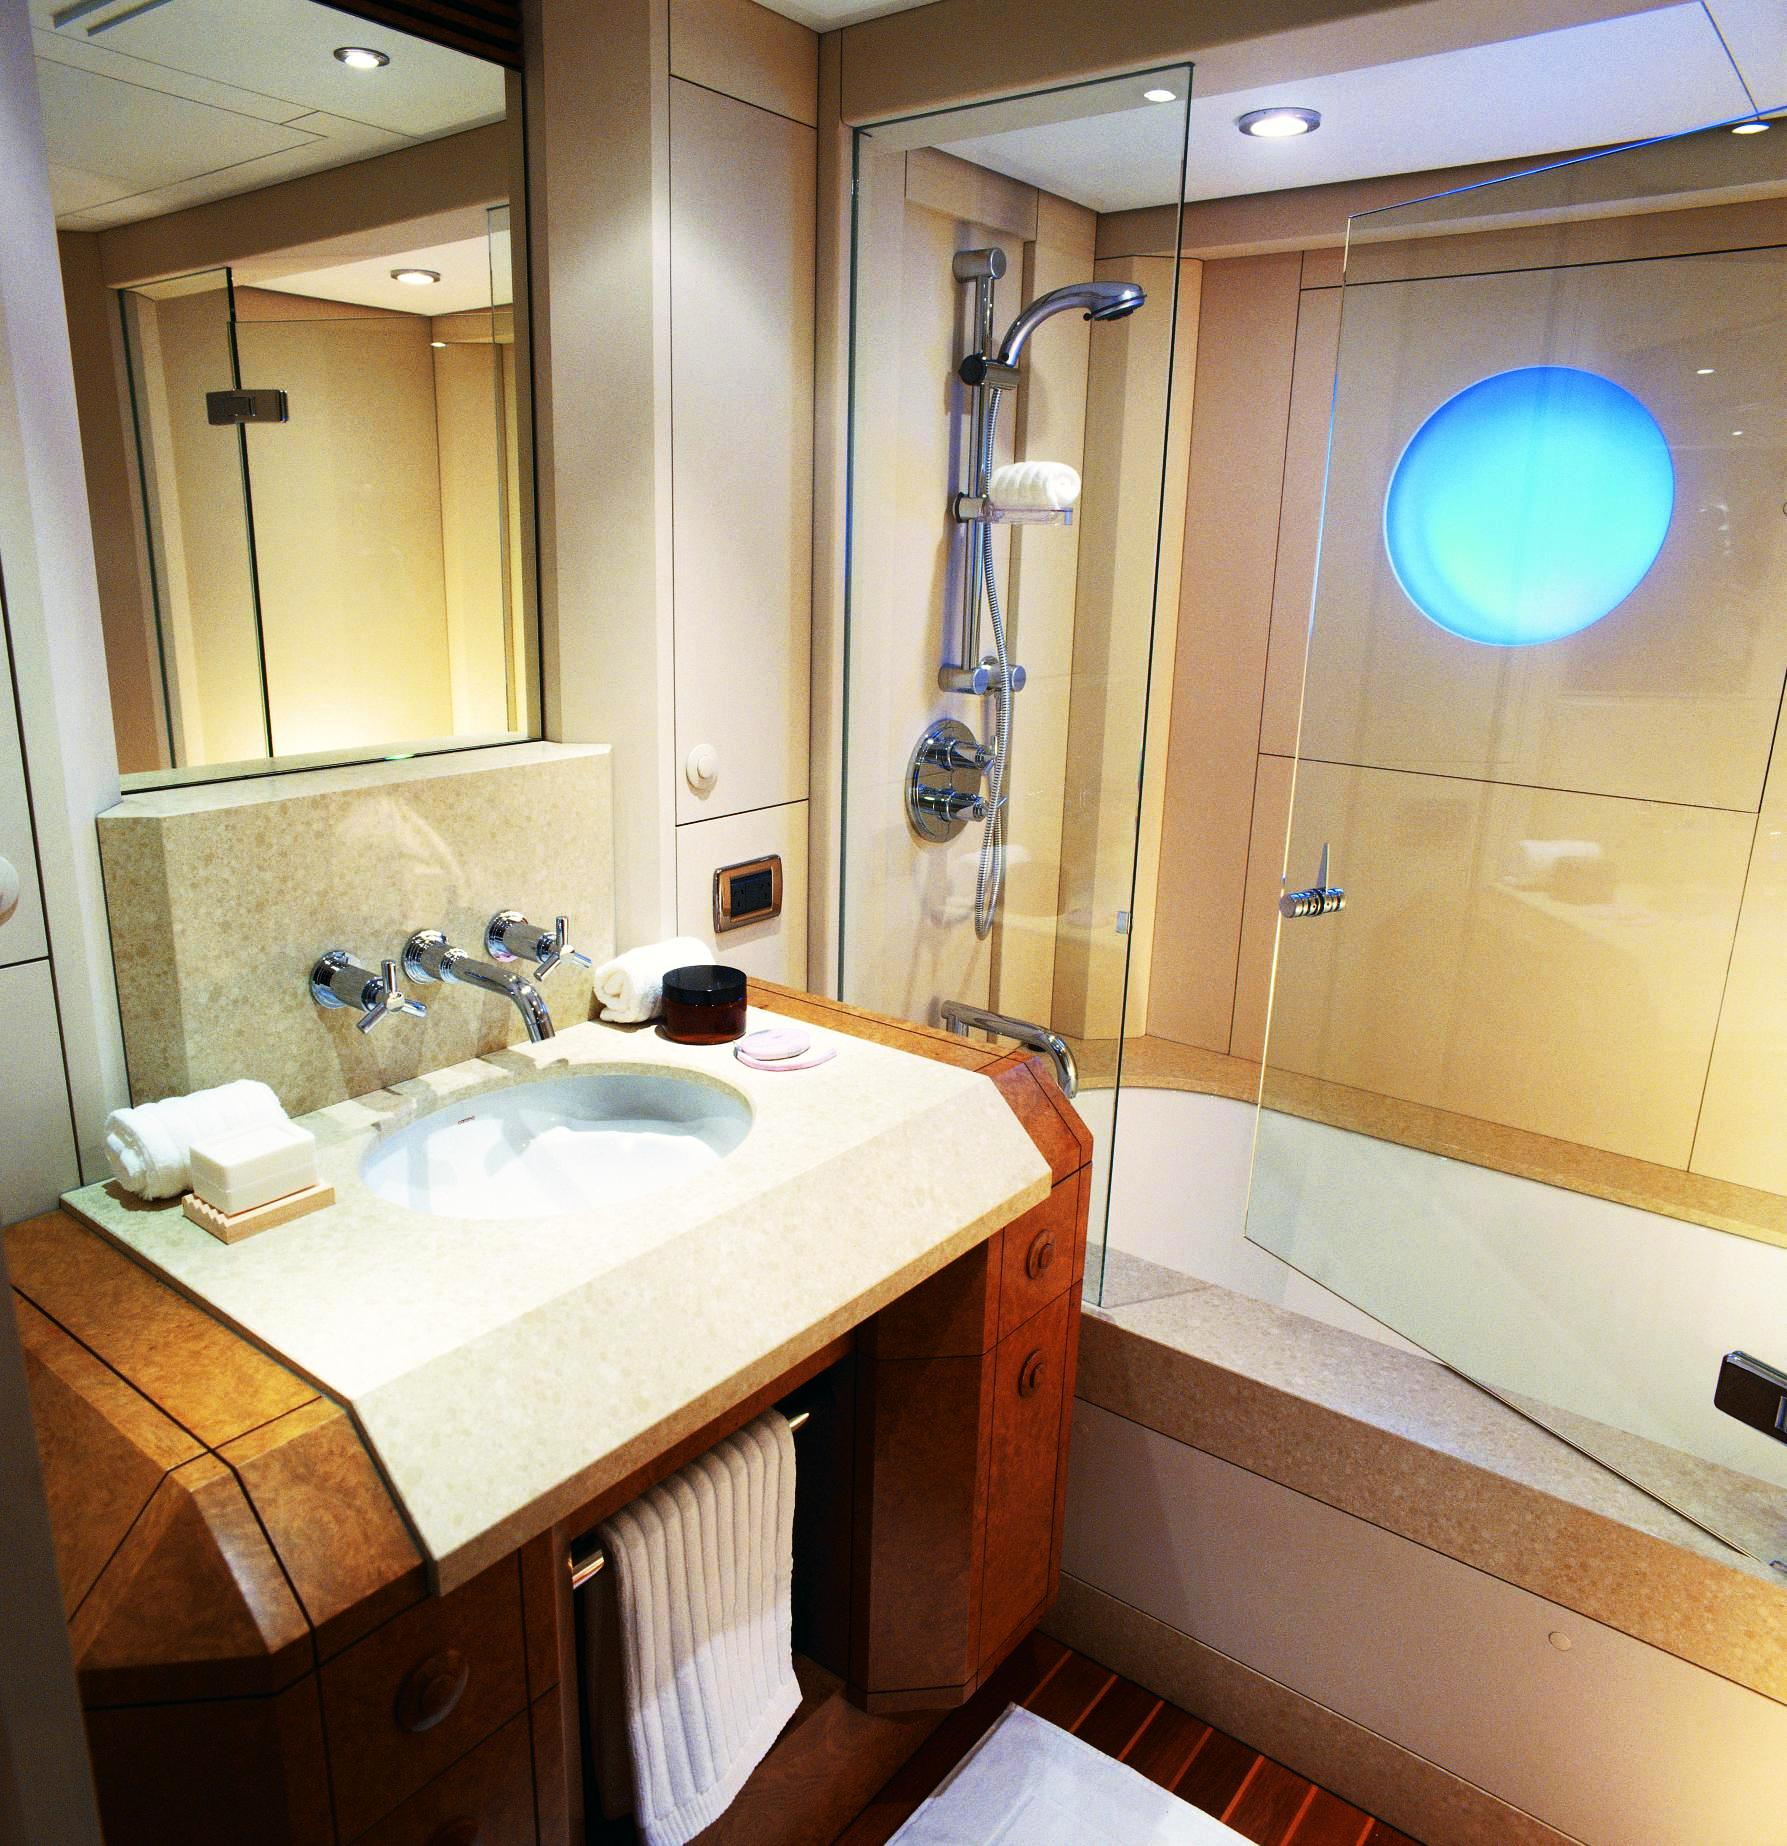 Boats With Bathrooms gallery. Boats With Bathrooms gallery   A1houston com